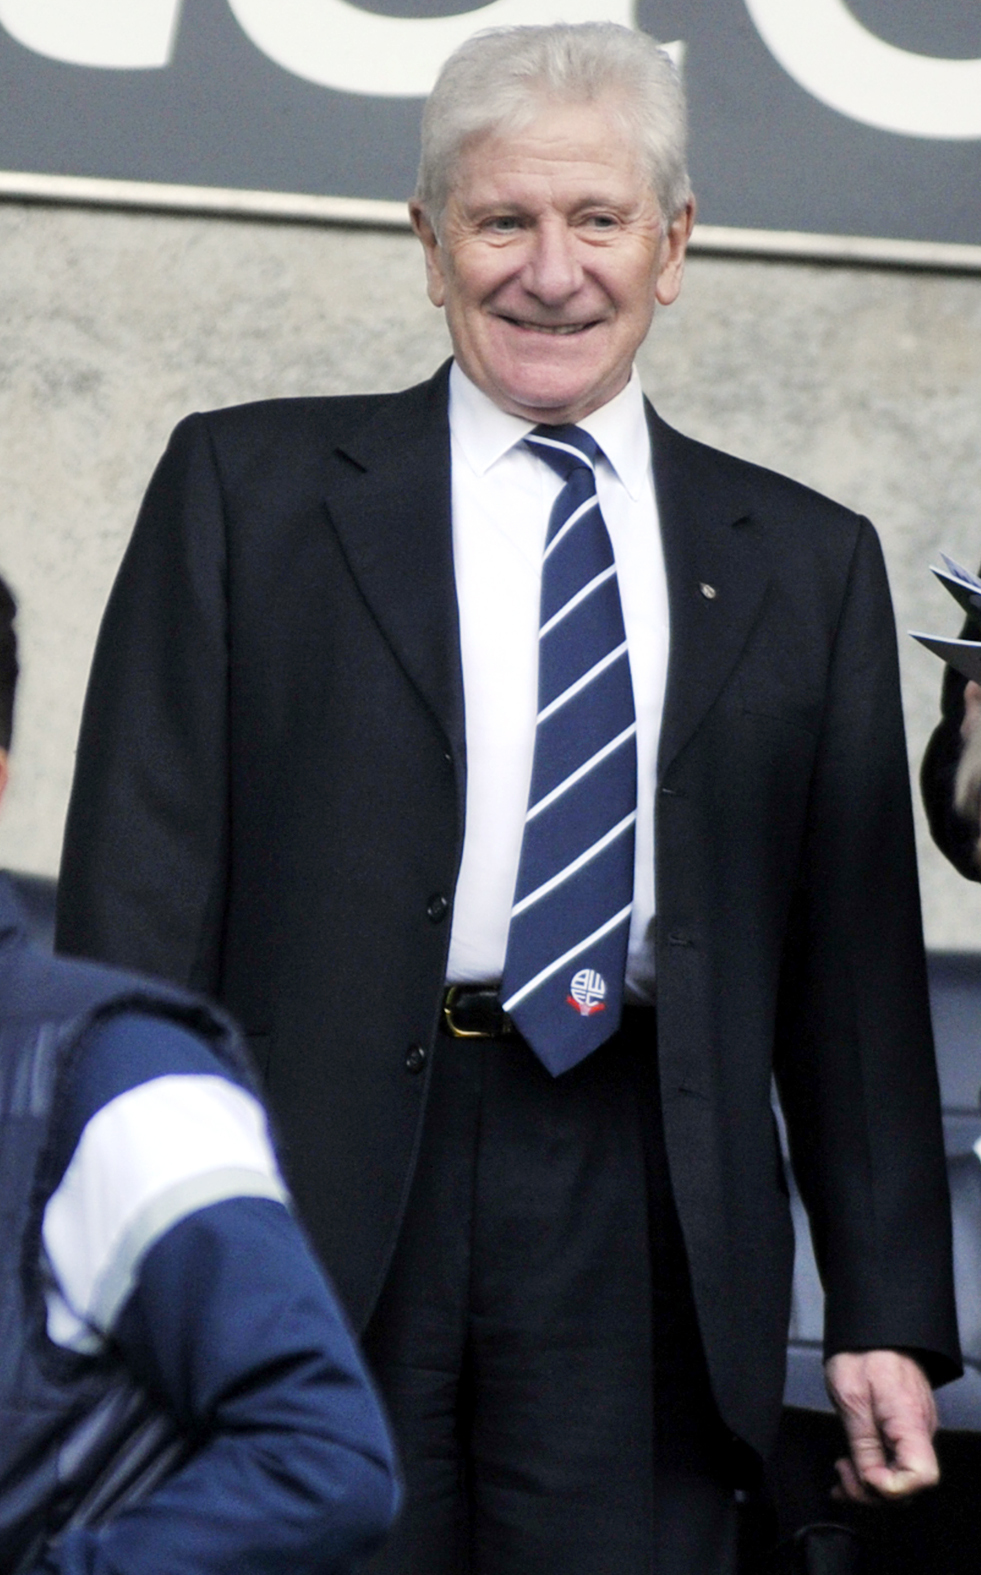 Former Bolton Wanderers owner, now life president, Eddie Davies